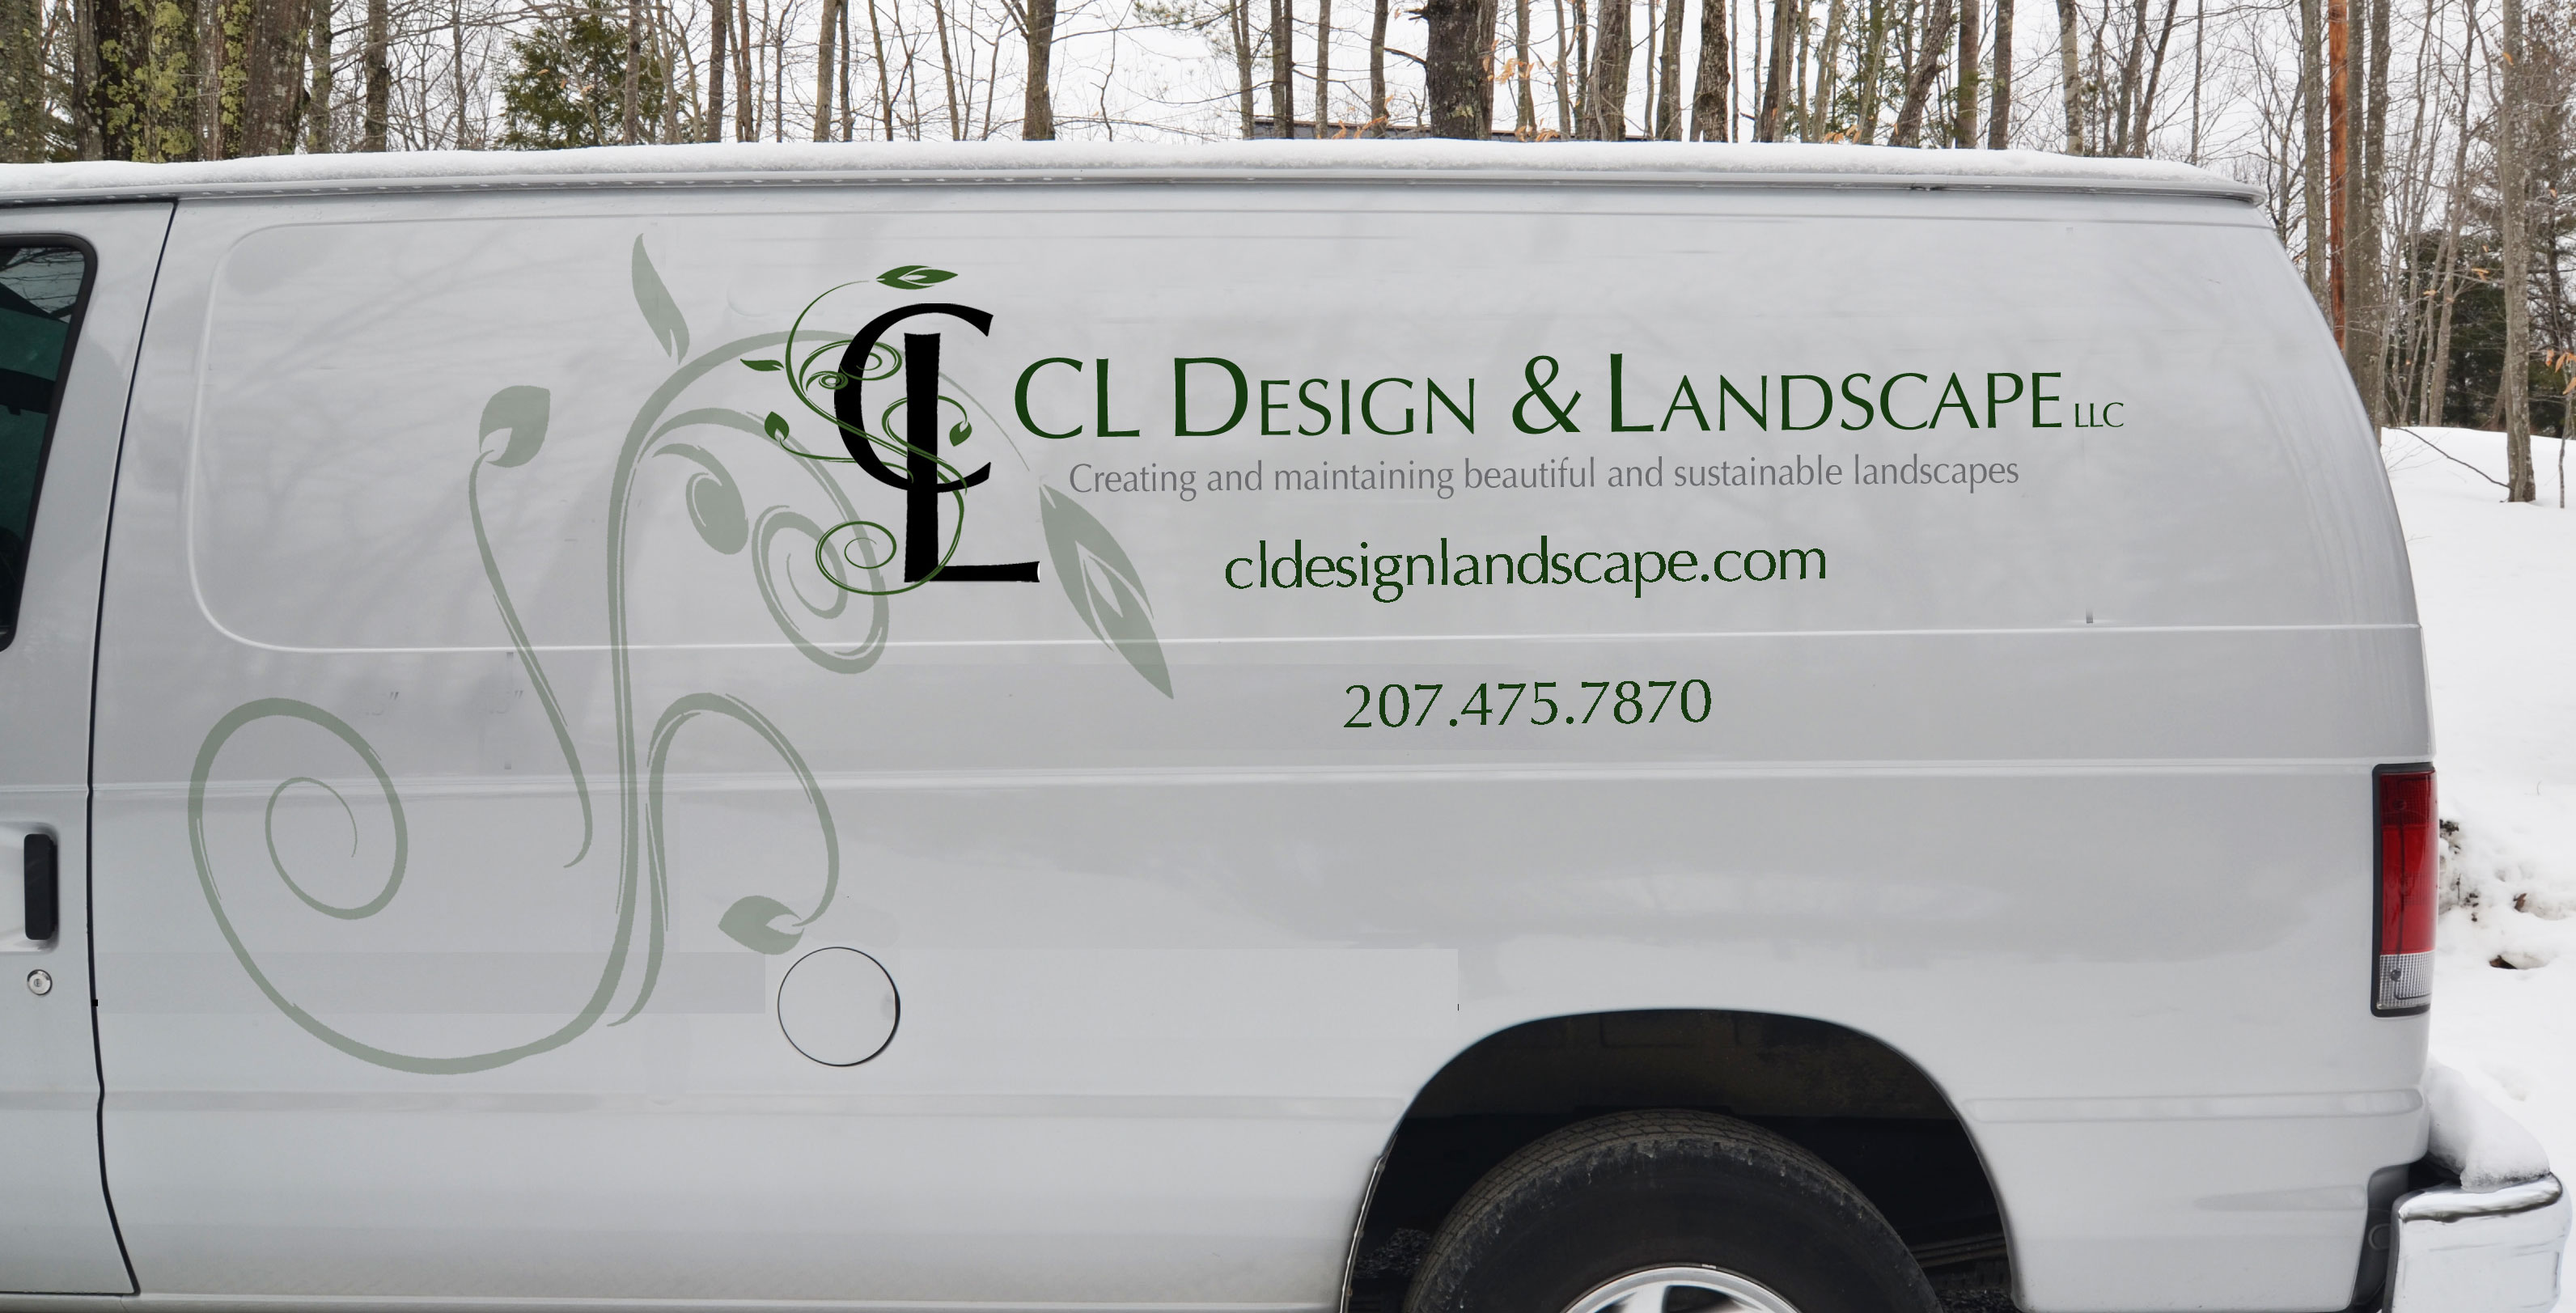 Vehicle wrap design for CL Design & Landscape